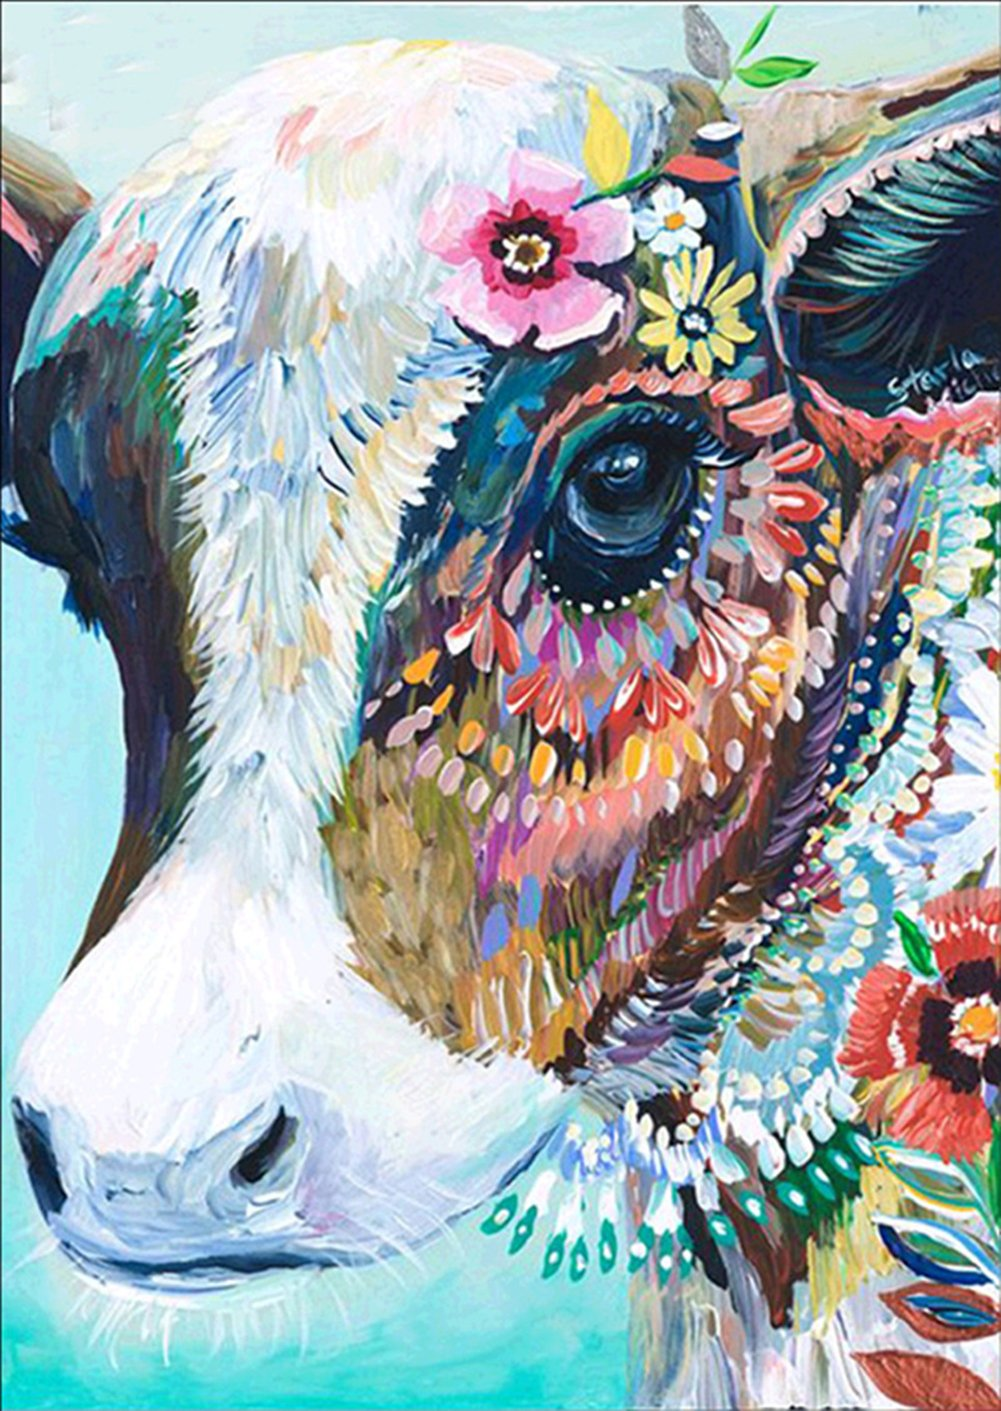 EOBROMD 5D Diamond Painting Full Drill, Crystal Rhinestone Paint with Diamonds Embroidery Pictures Arts Crafts for Home Wall Decor - Cow 12 x 16inch 4336933227